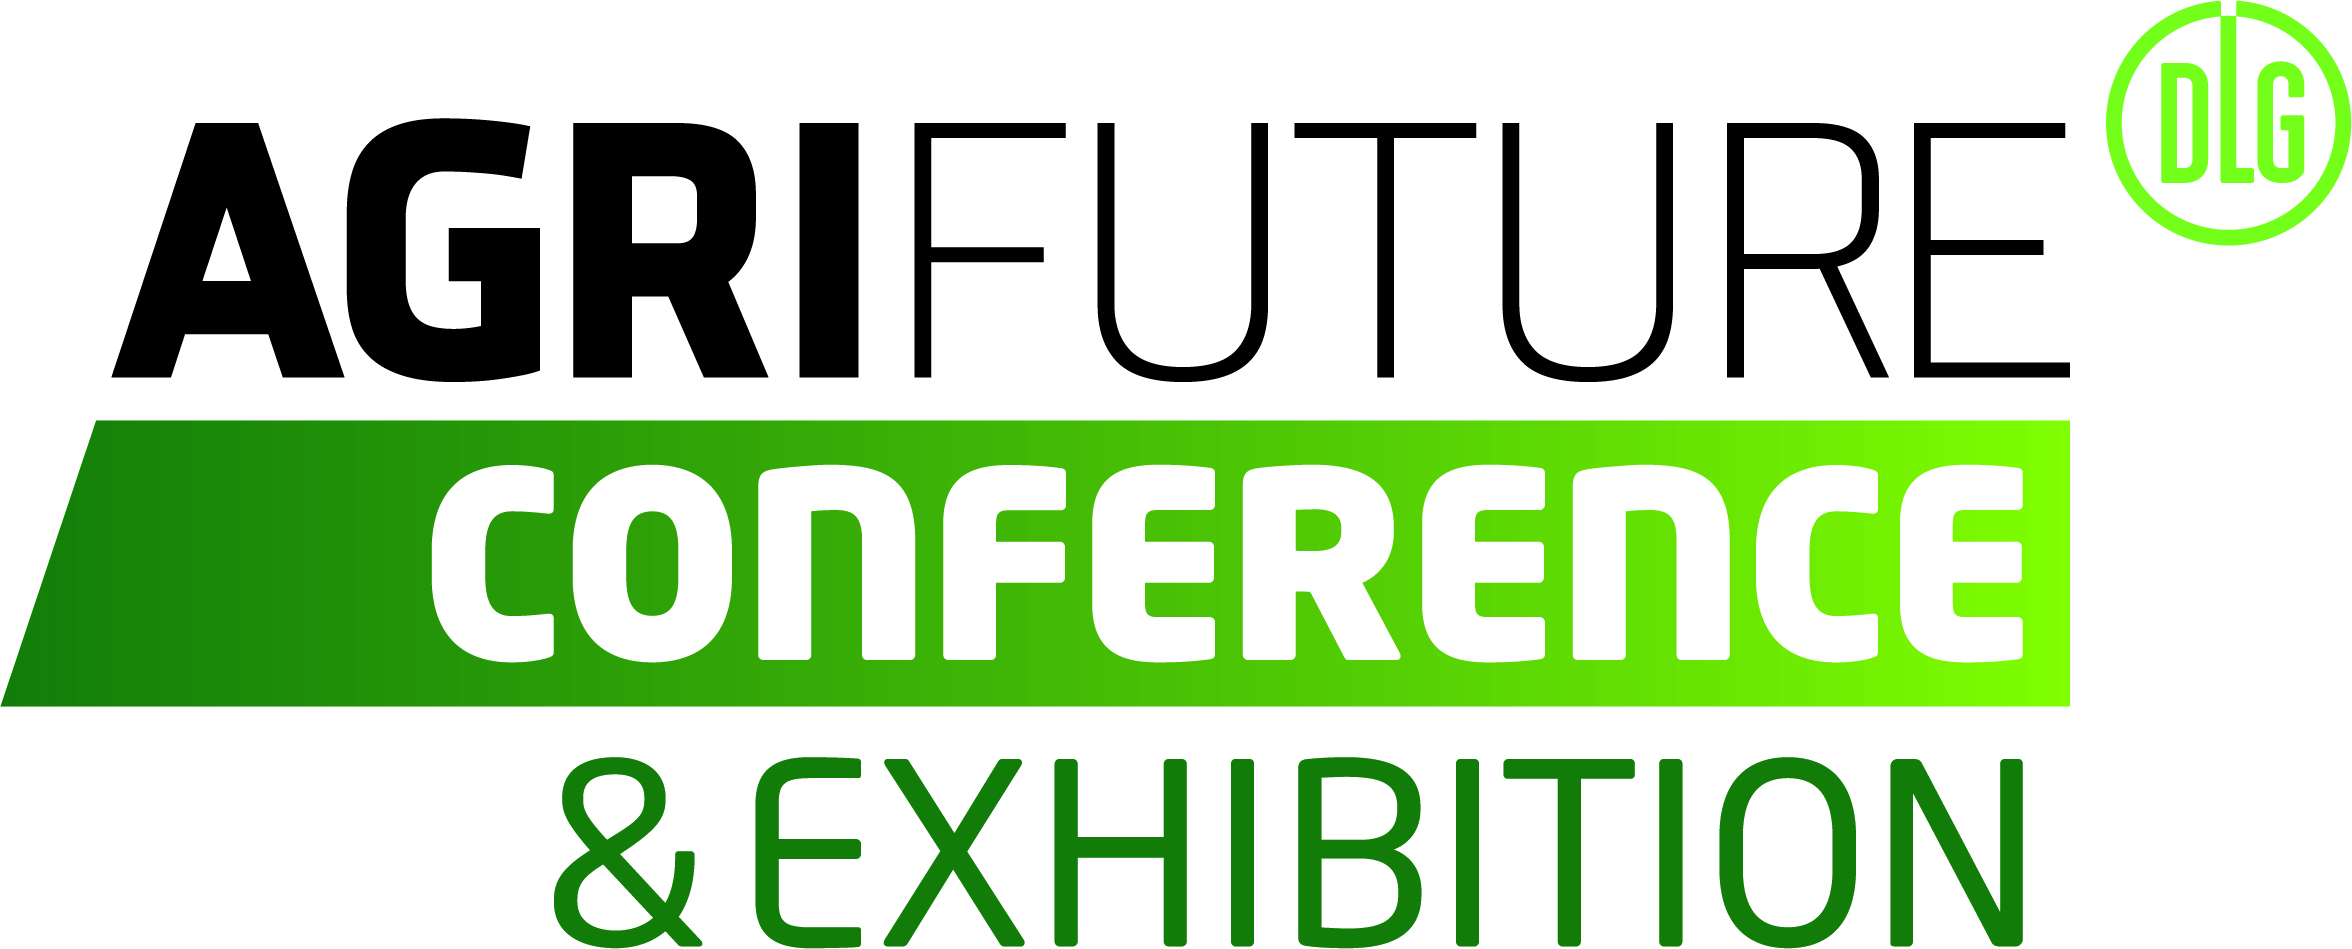 AGRIFUTURE CONFERENCE WILL SHOW FUTURE OPTIONS FOR FARMERS IN SOUTHEAST ASIA